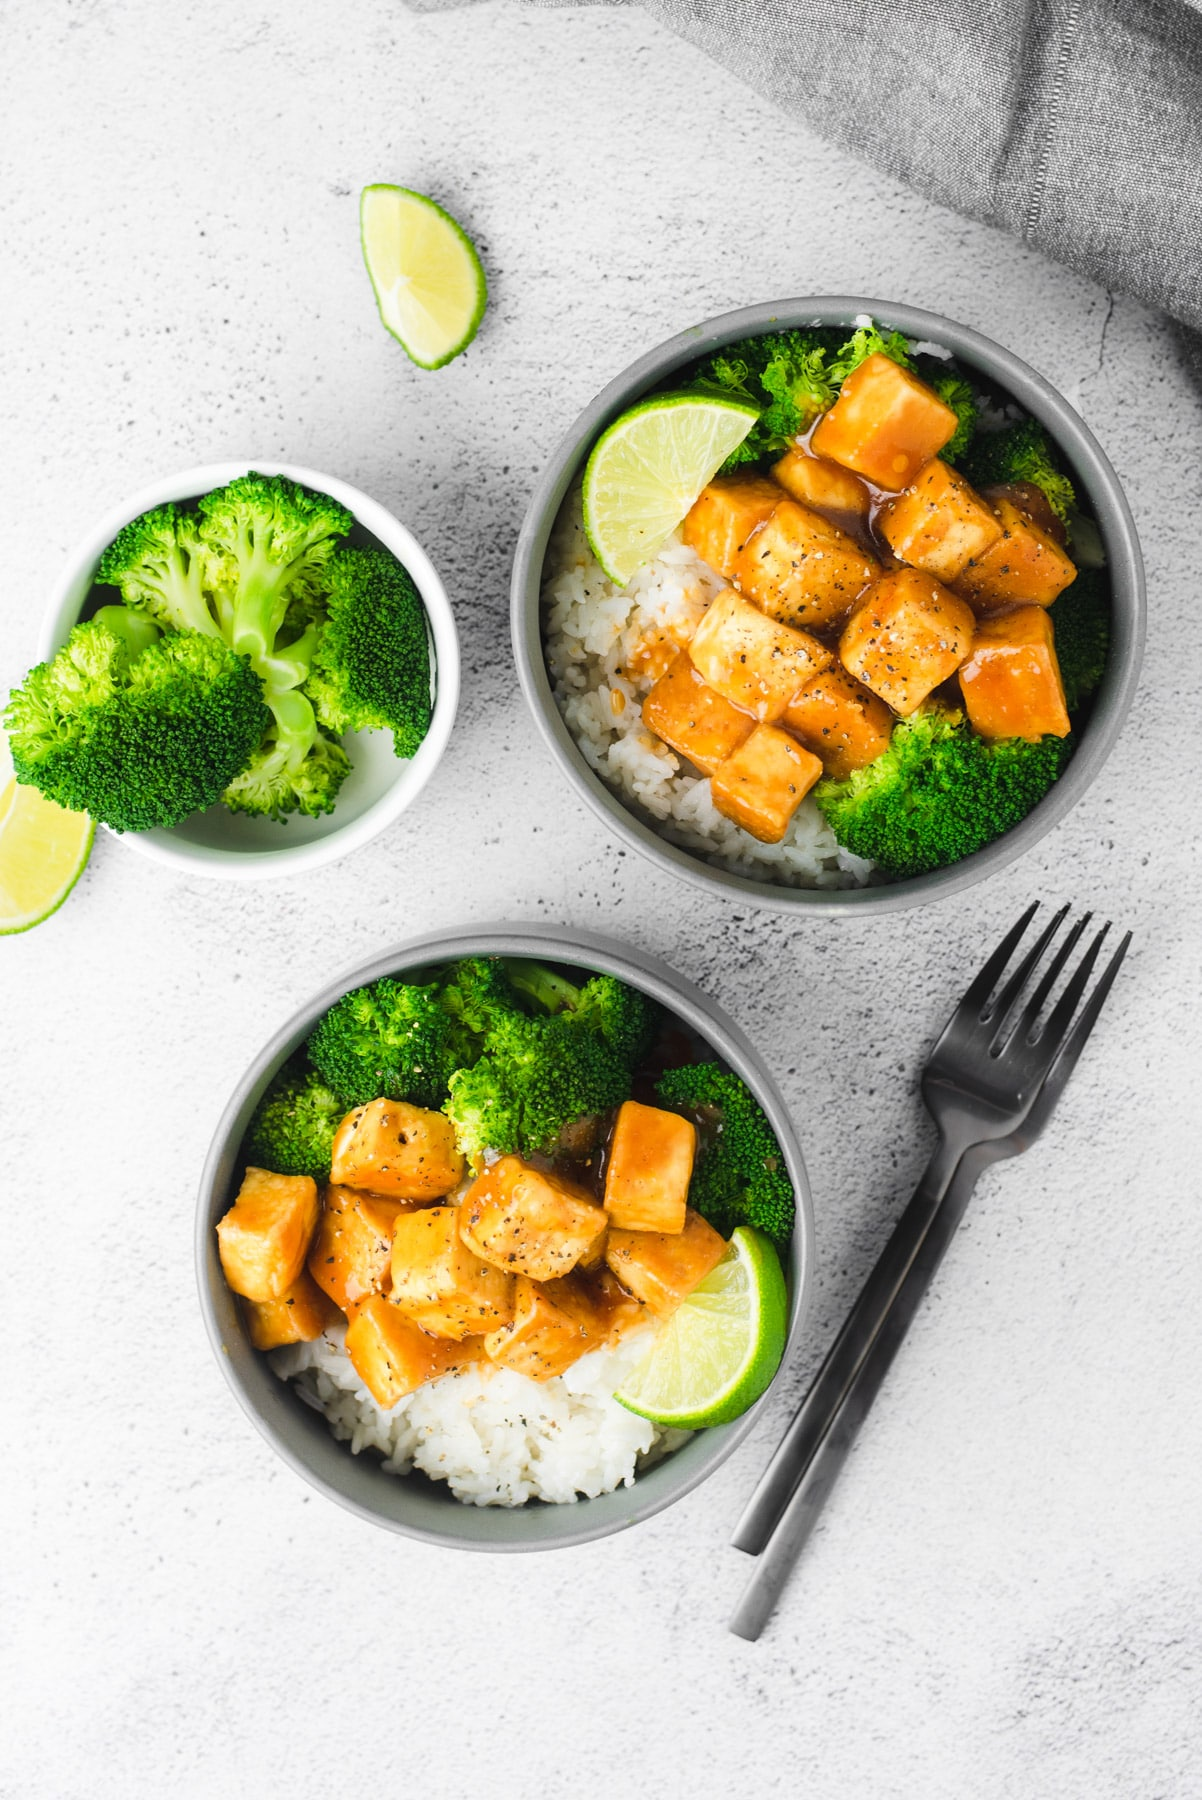 Two gray bowls filled with two servings of General Tso's tofu on a gray background